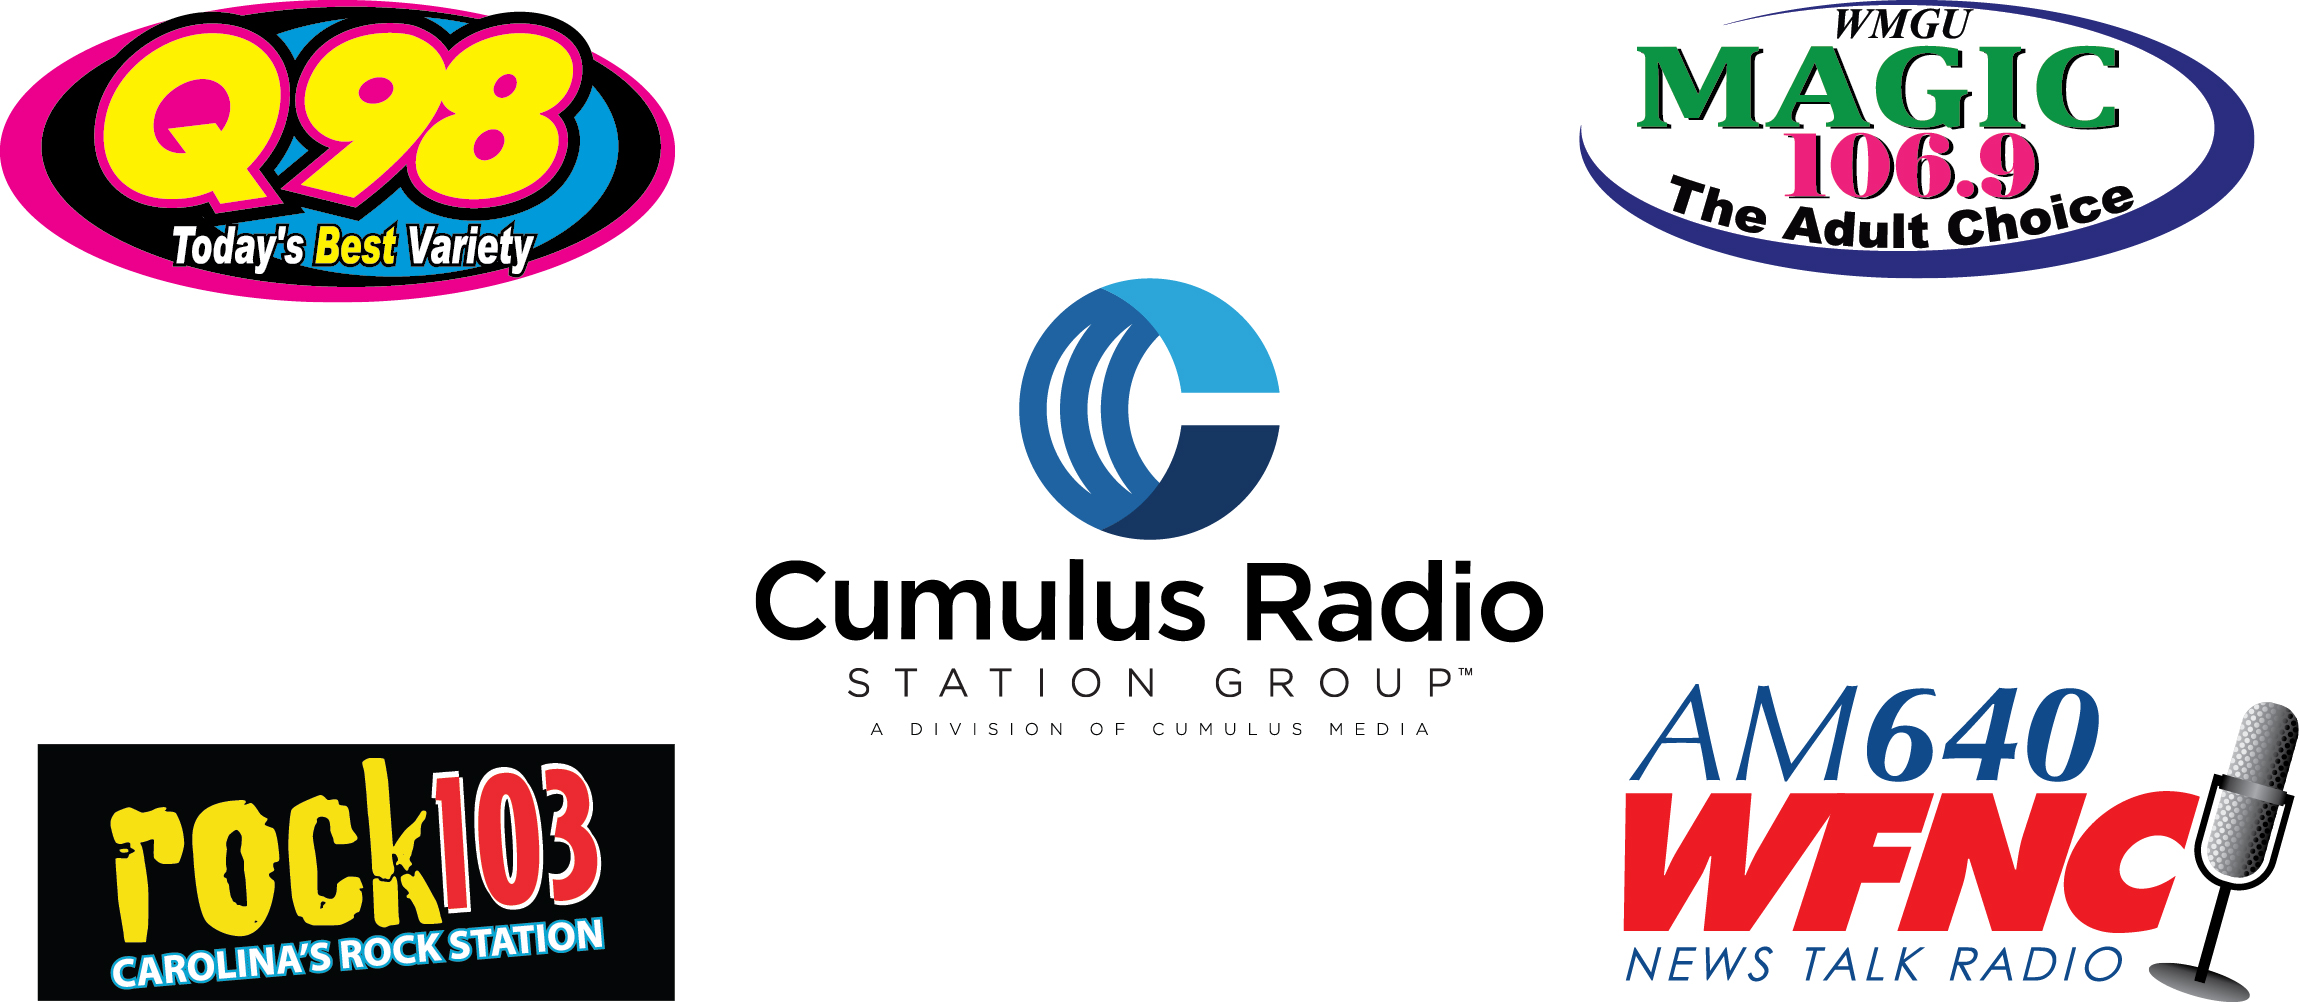 Cumulus logos square copy